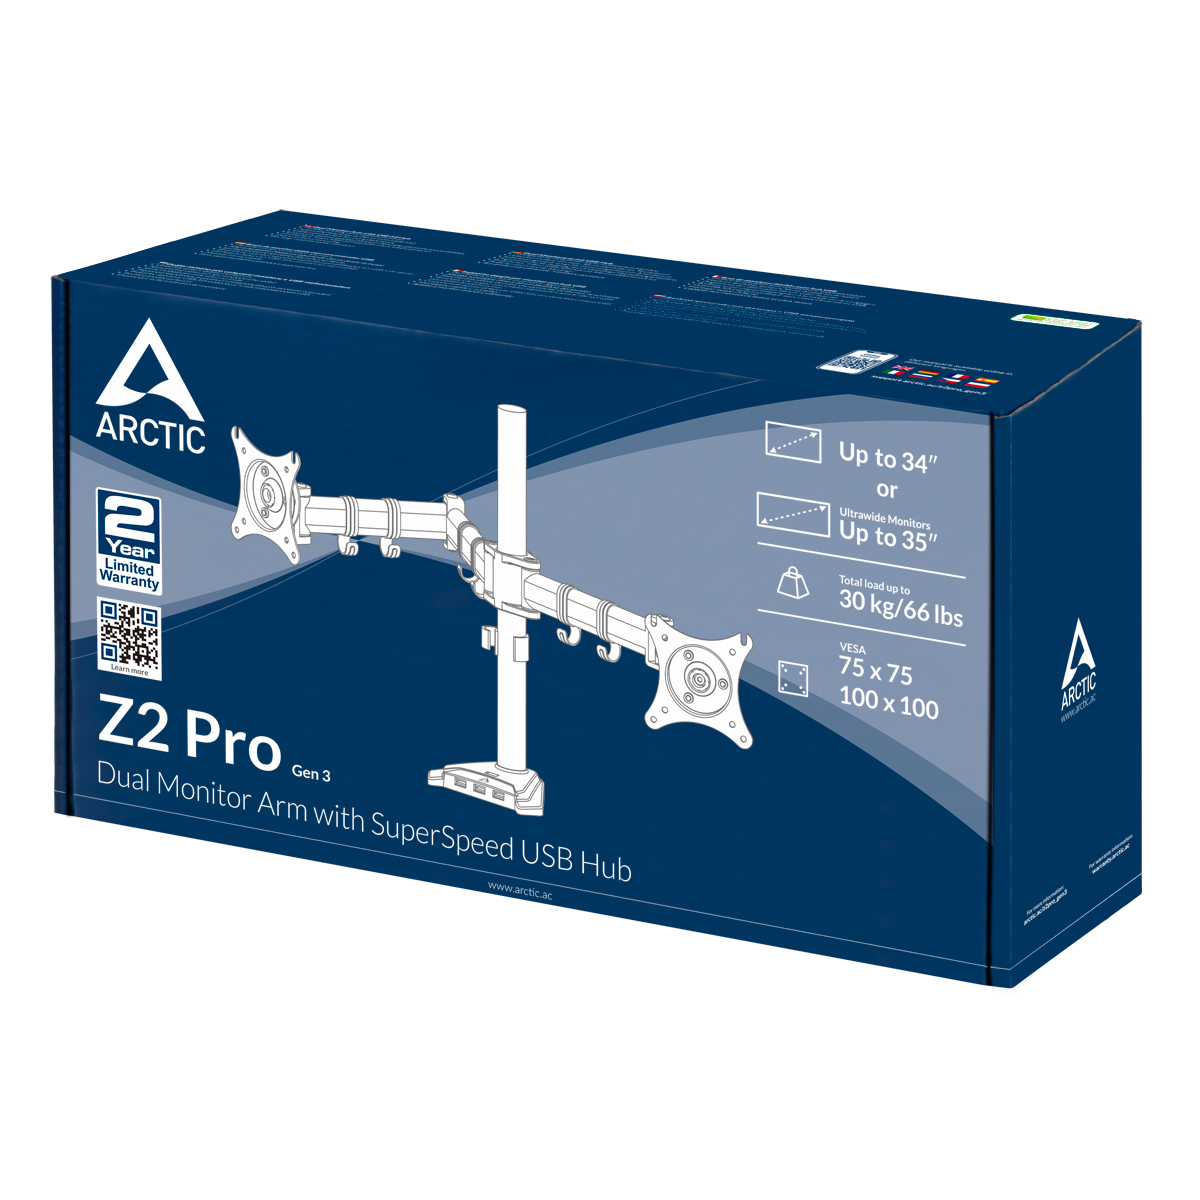 Desk Mount Dual Monitor Arm with SuperSpeed USB Hub ARCTIC Z2 Pro (Gen 3) Packaging Front View